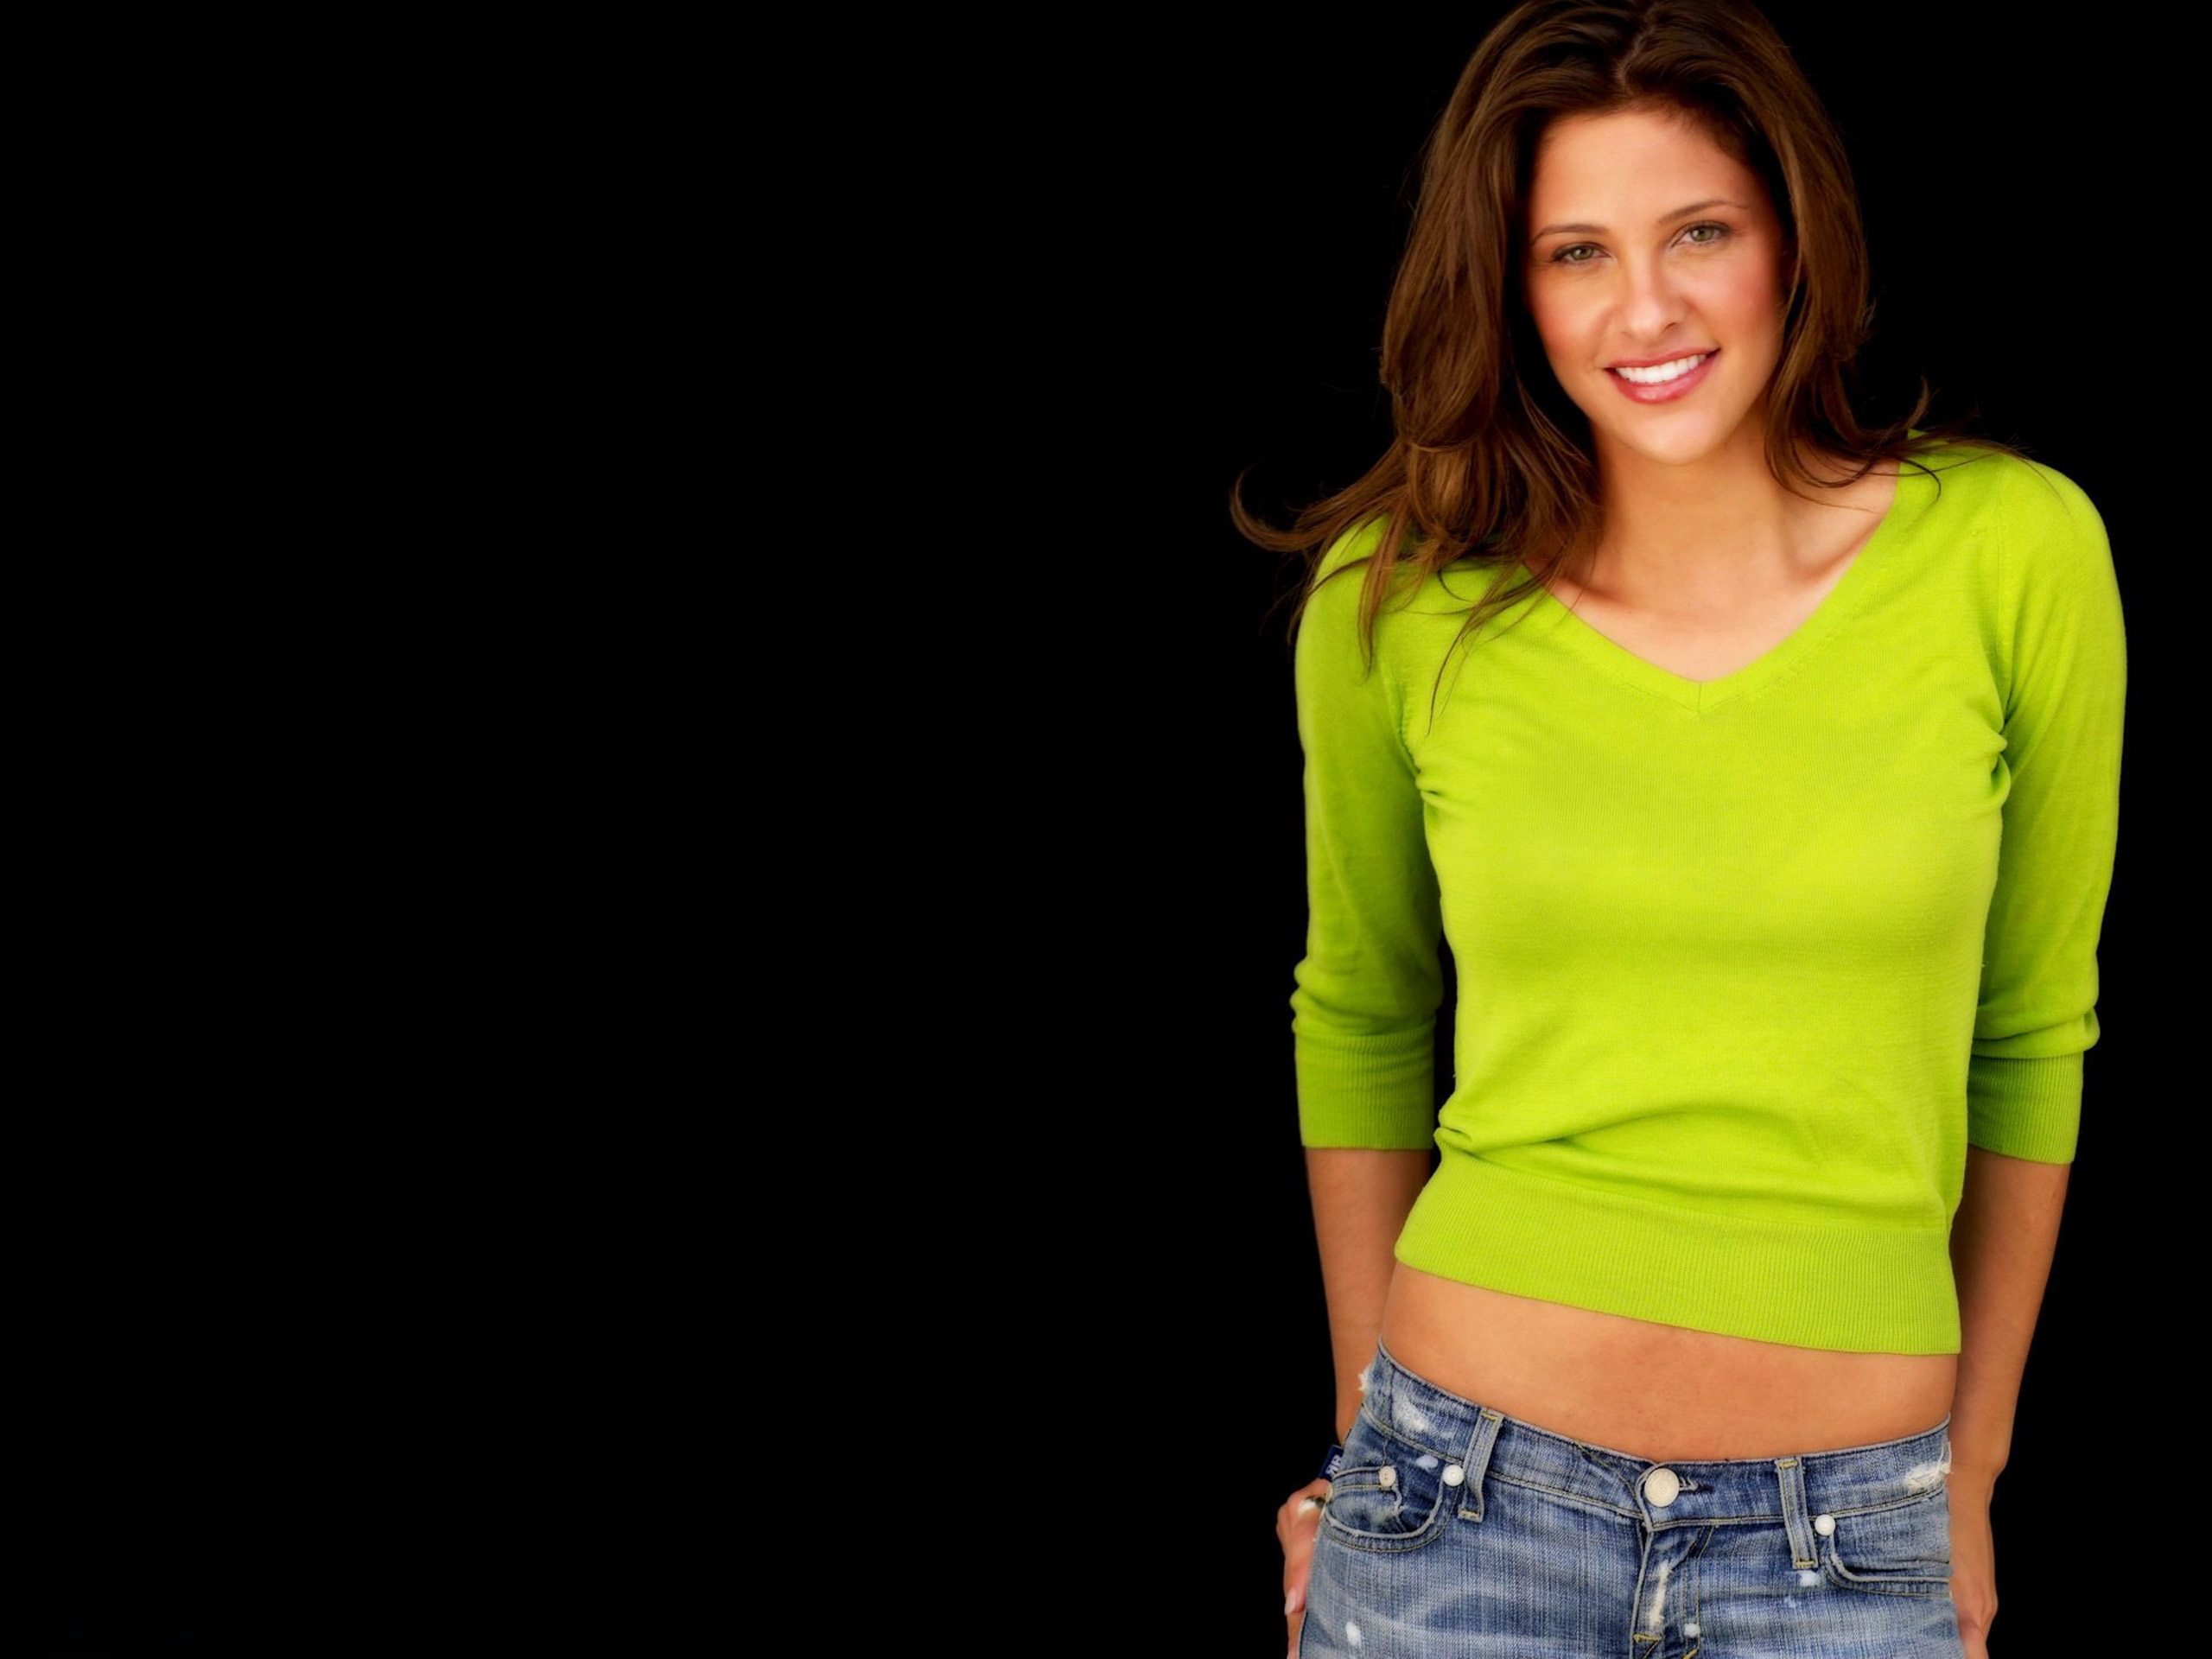 Jill Wagner Nude Photos 22